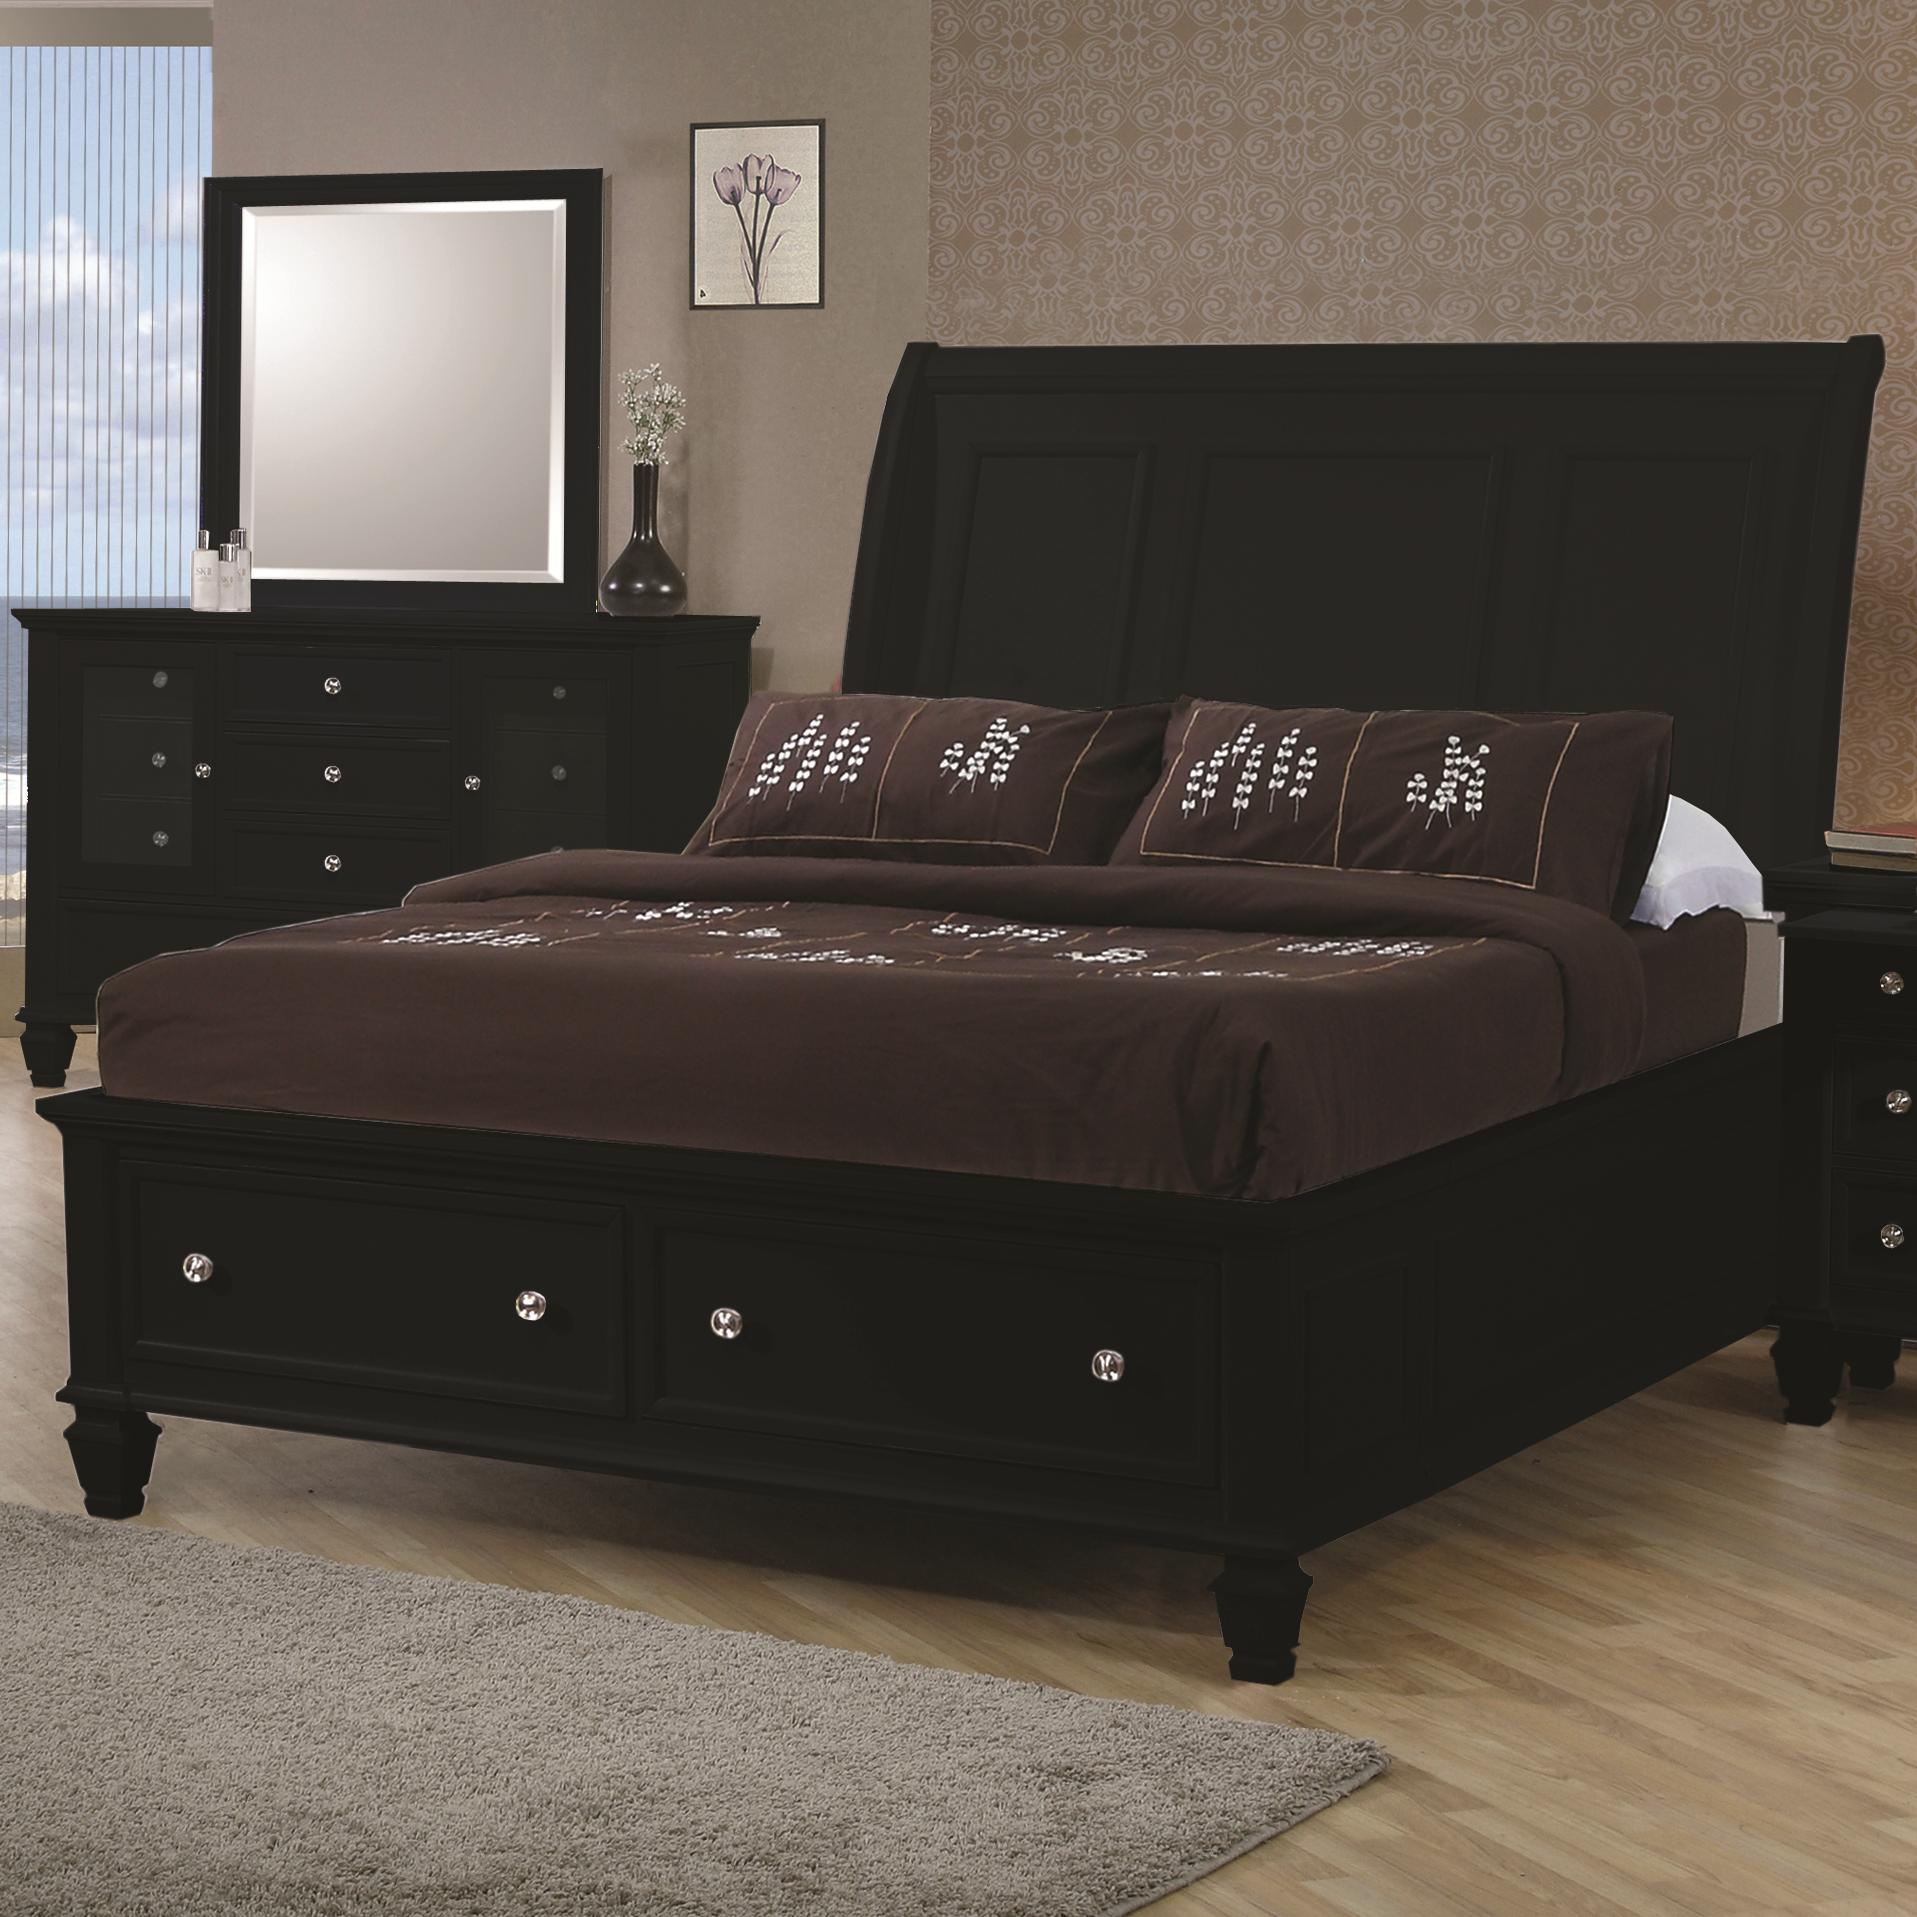 Sandy Beach California King Sleigh Bed by Coaster at Nassau Furniture and Mattress